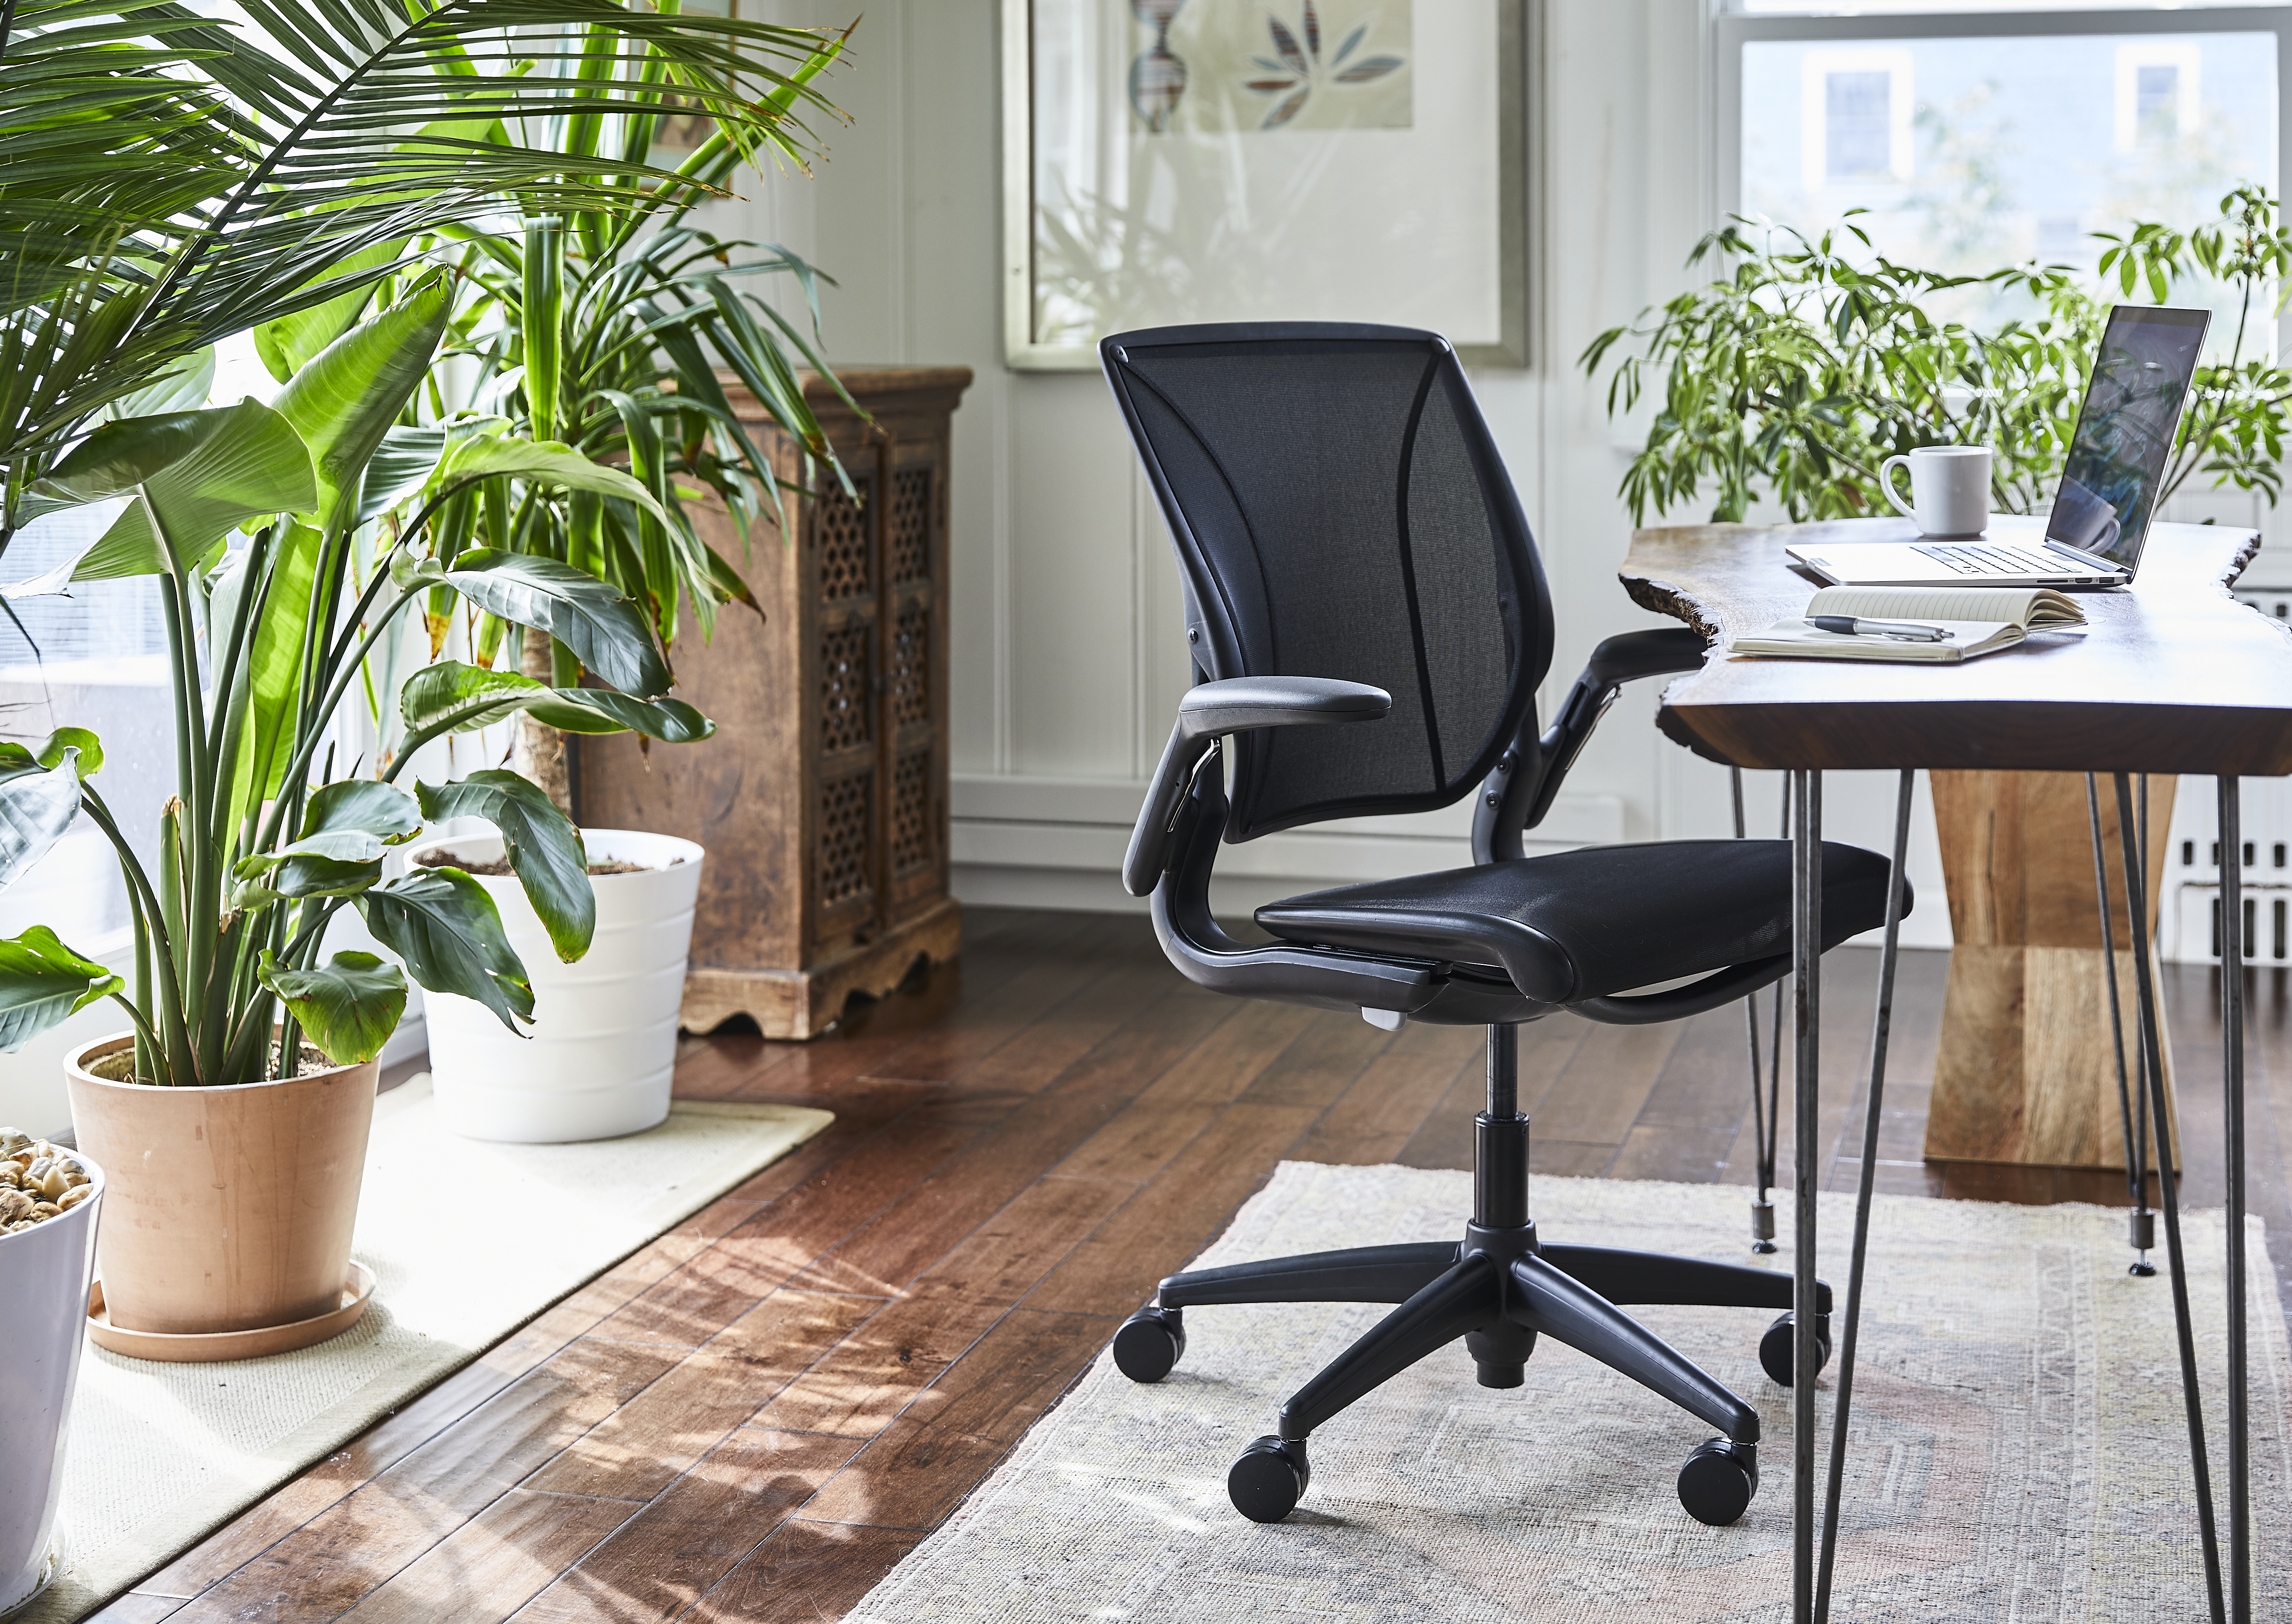 As Companies Extend Work From Home Policies Humanscale Offers New Wfh Products Including Introduction Of The Cost Effective World One Chair Business Wire